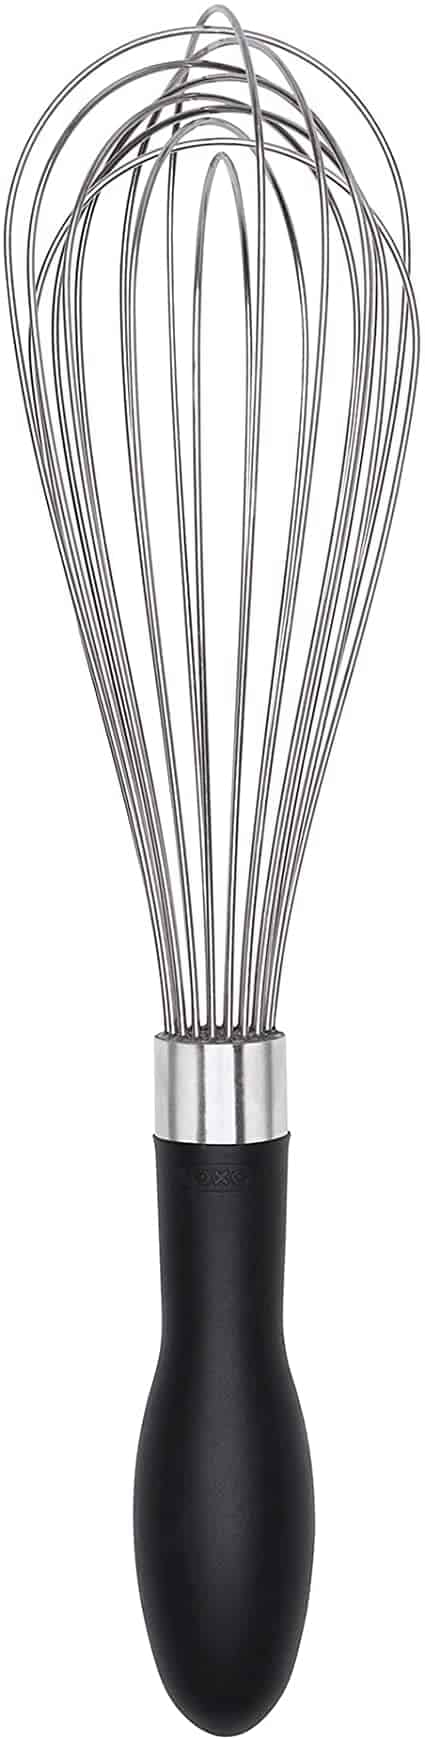 OXO 11-Inch Balloon Whisk